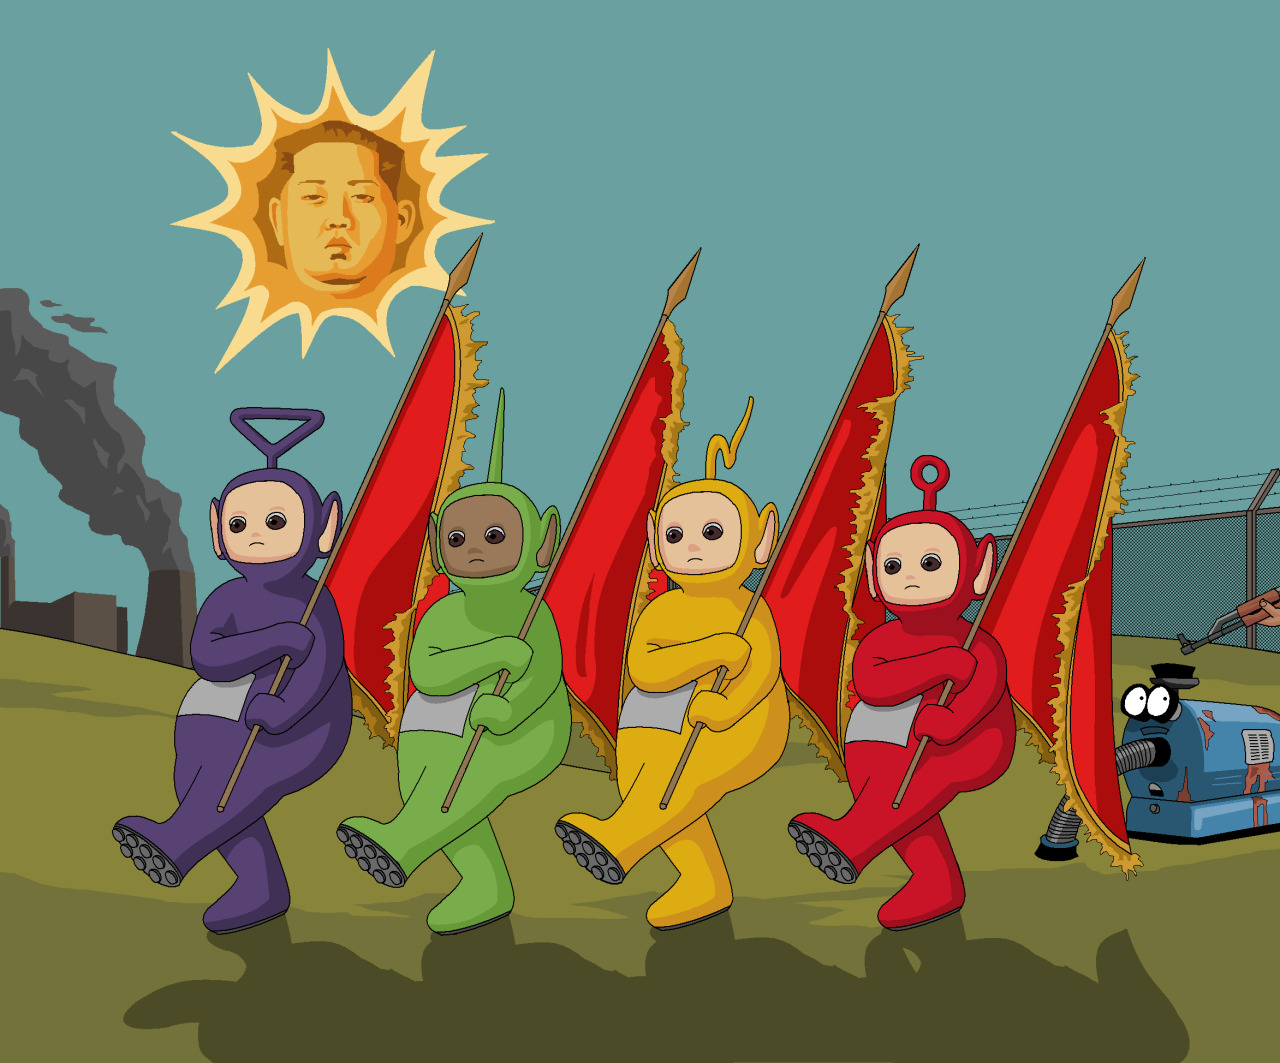 The Teletubbies in North Korea by Jim'll Paint It